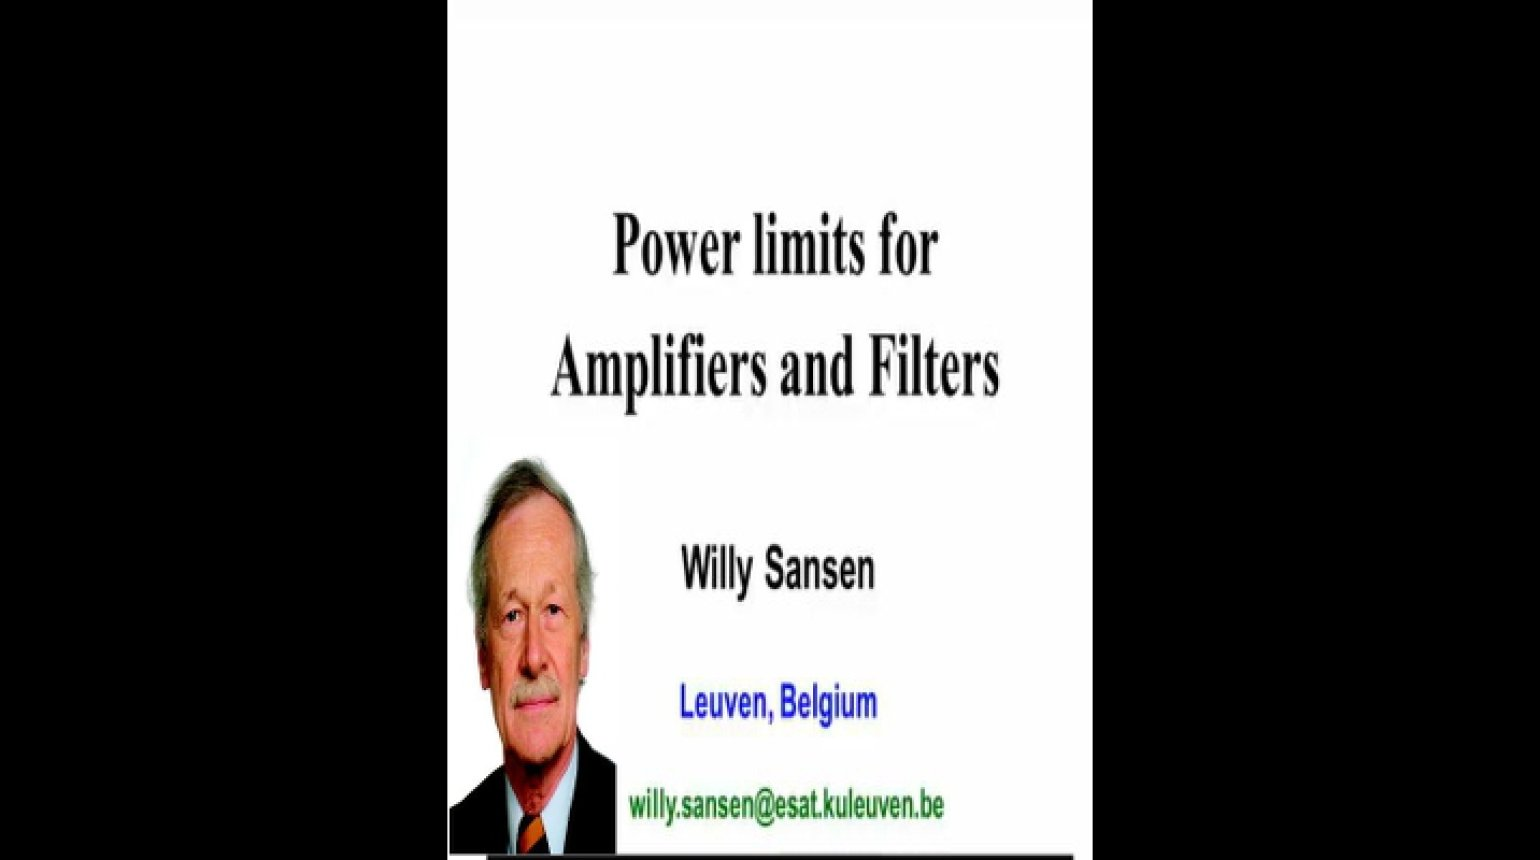 Power Limits for Amplifiers and Filters Video